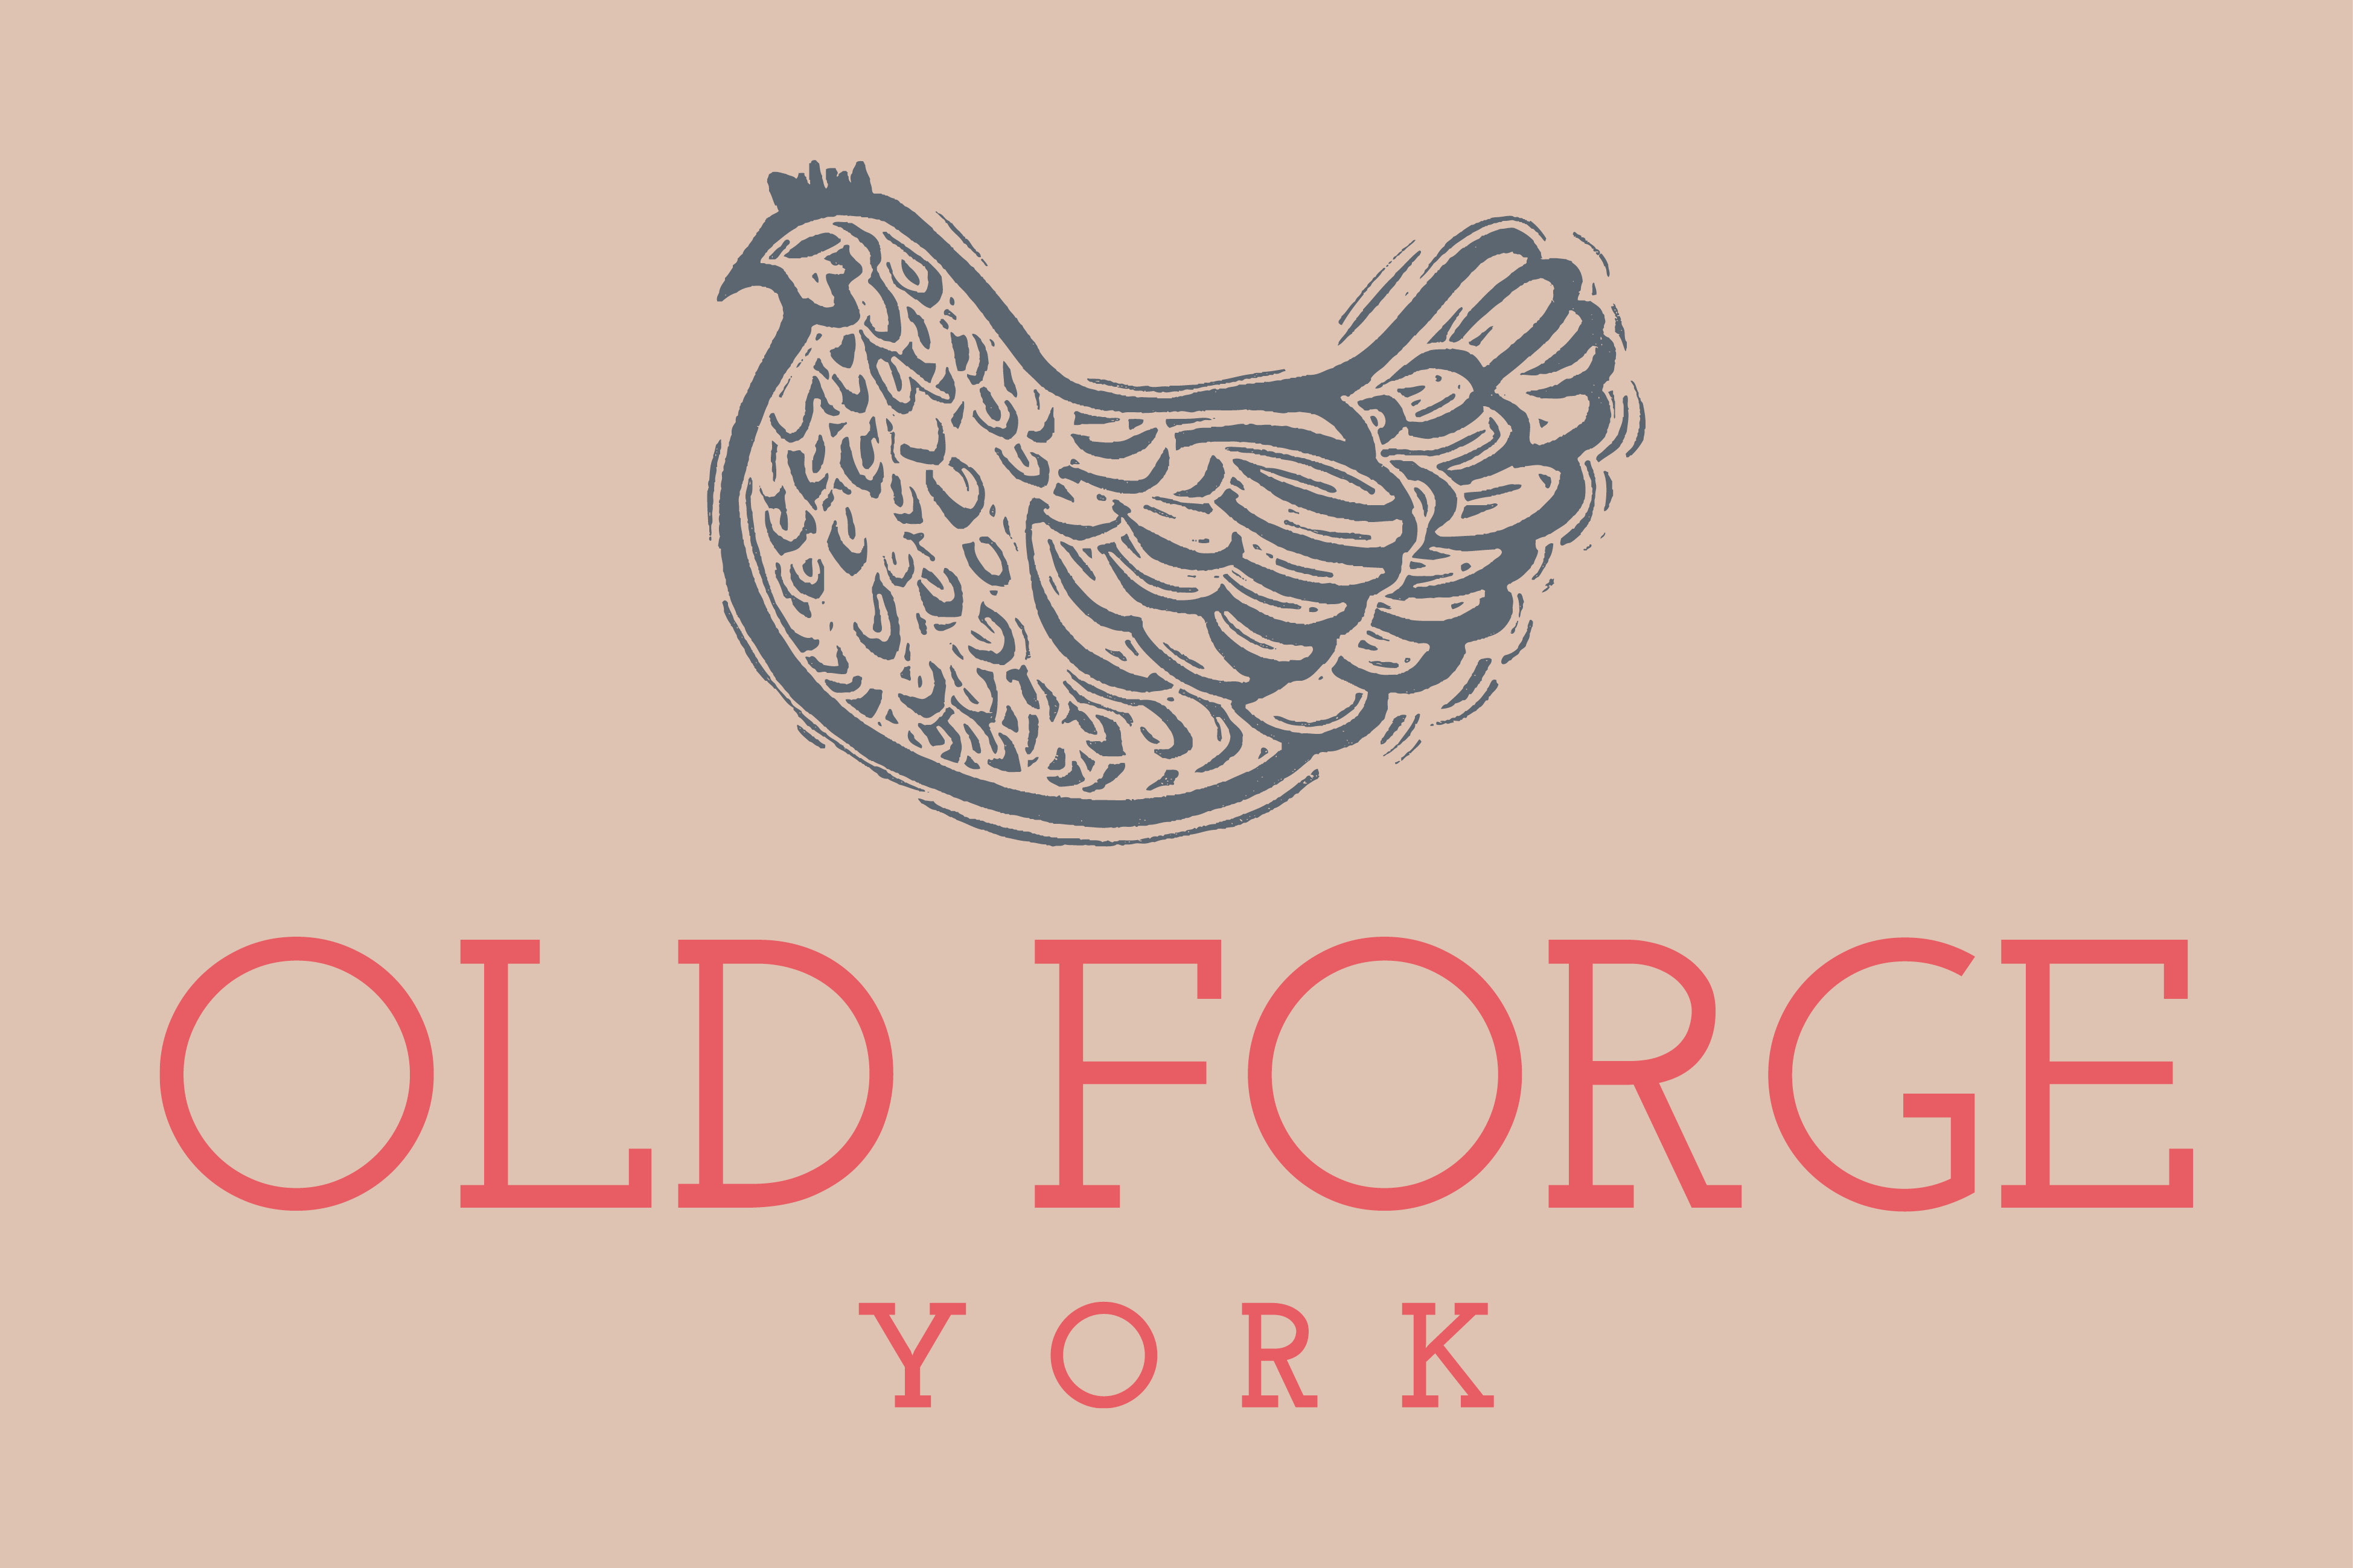 Old Forge York branding